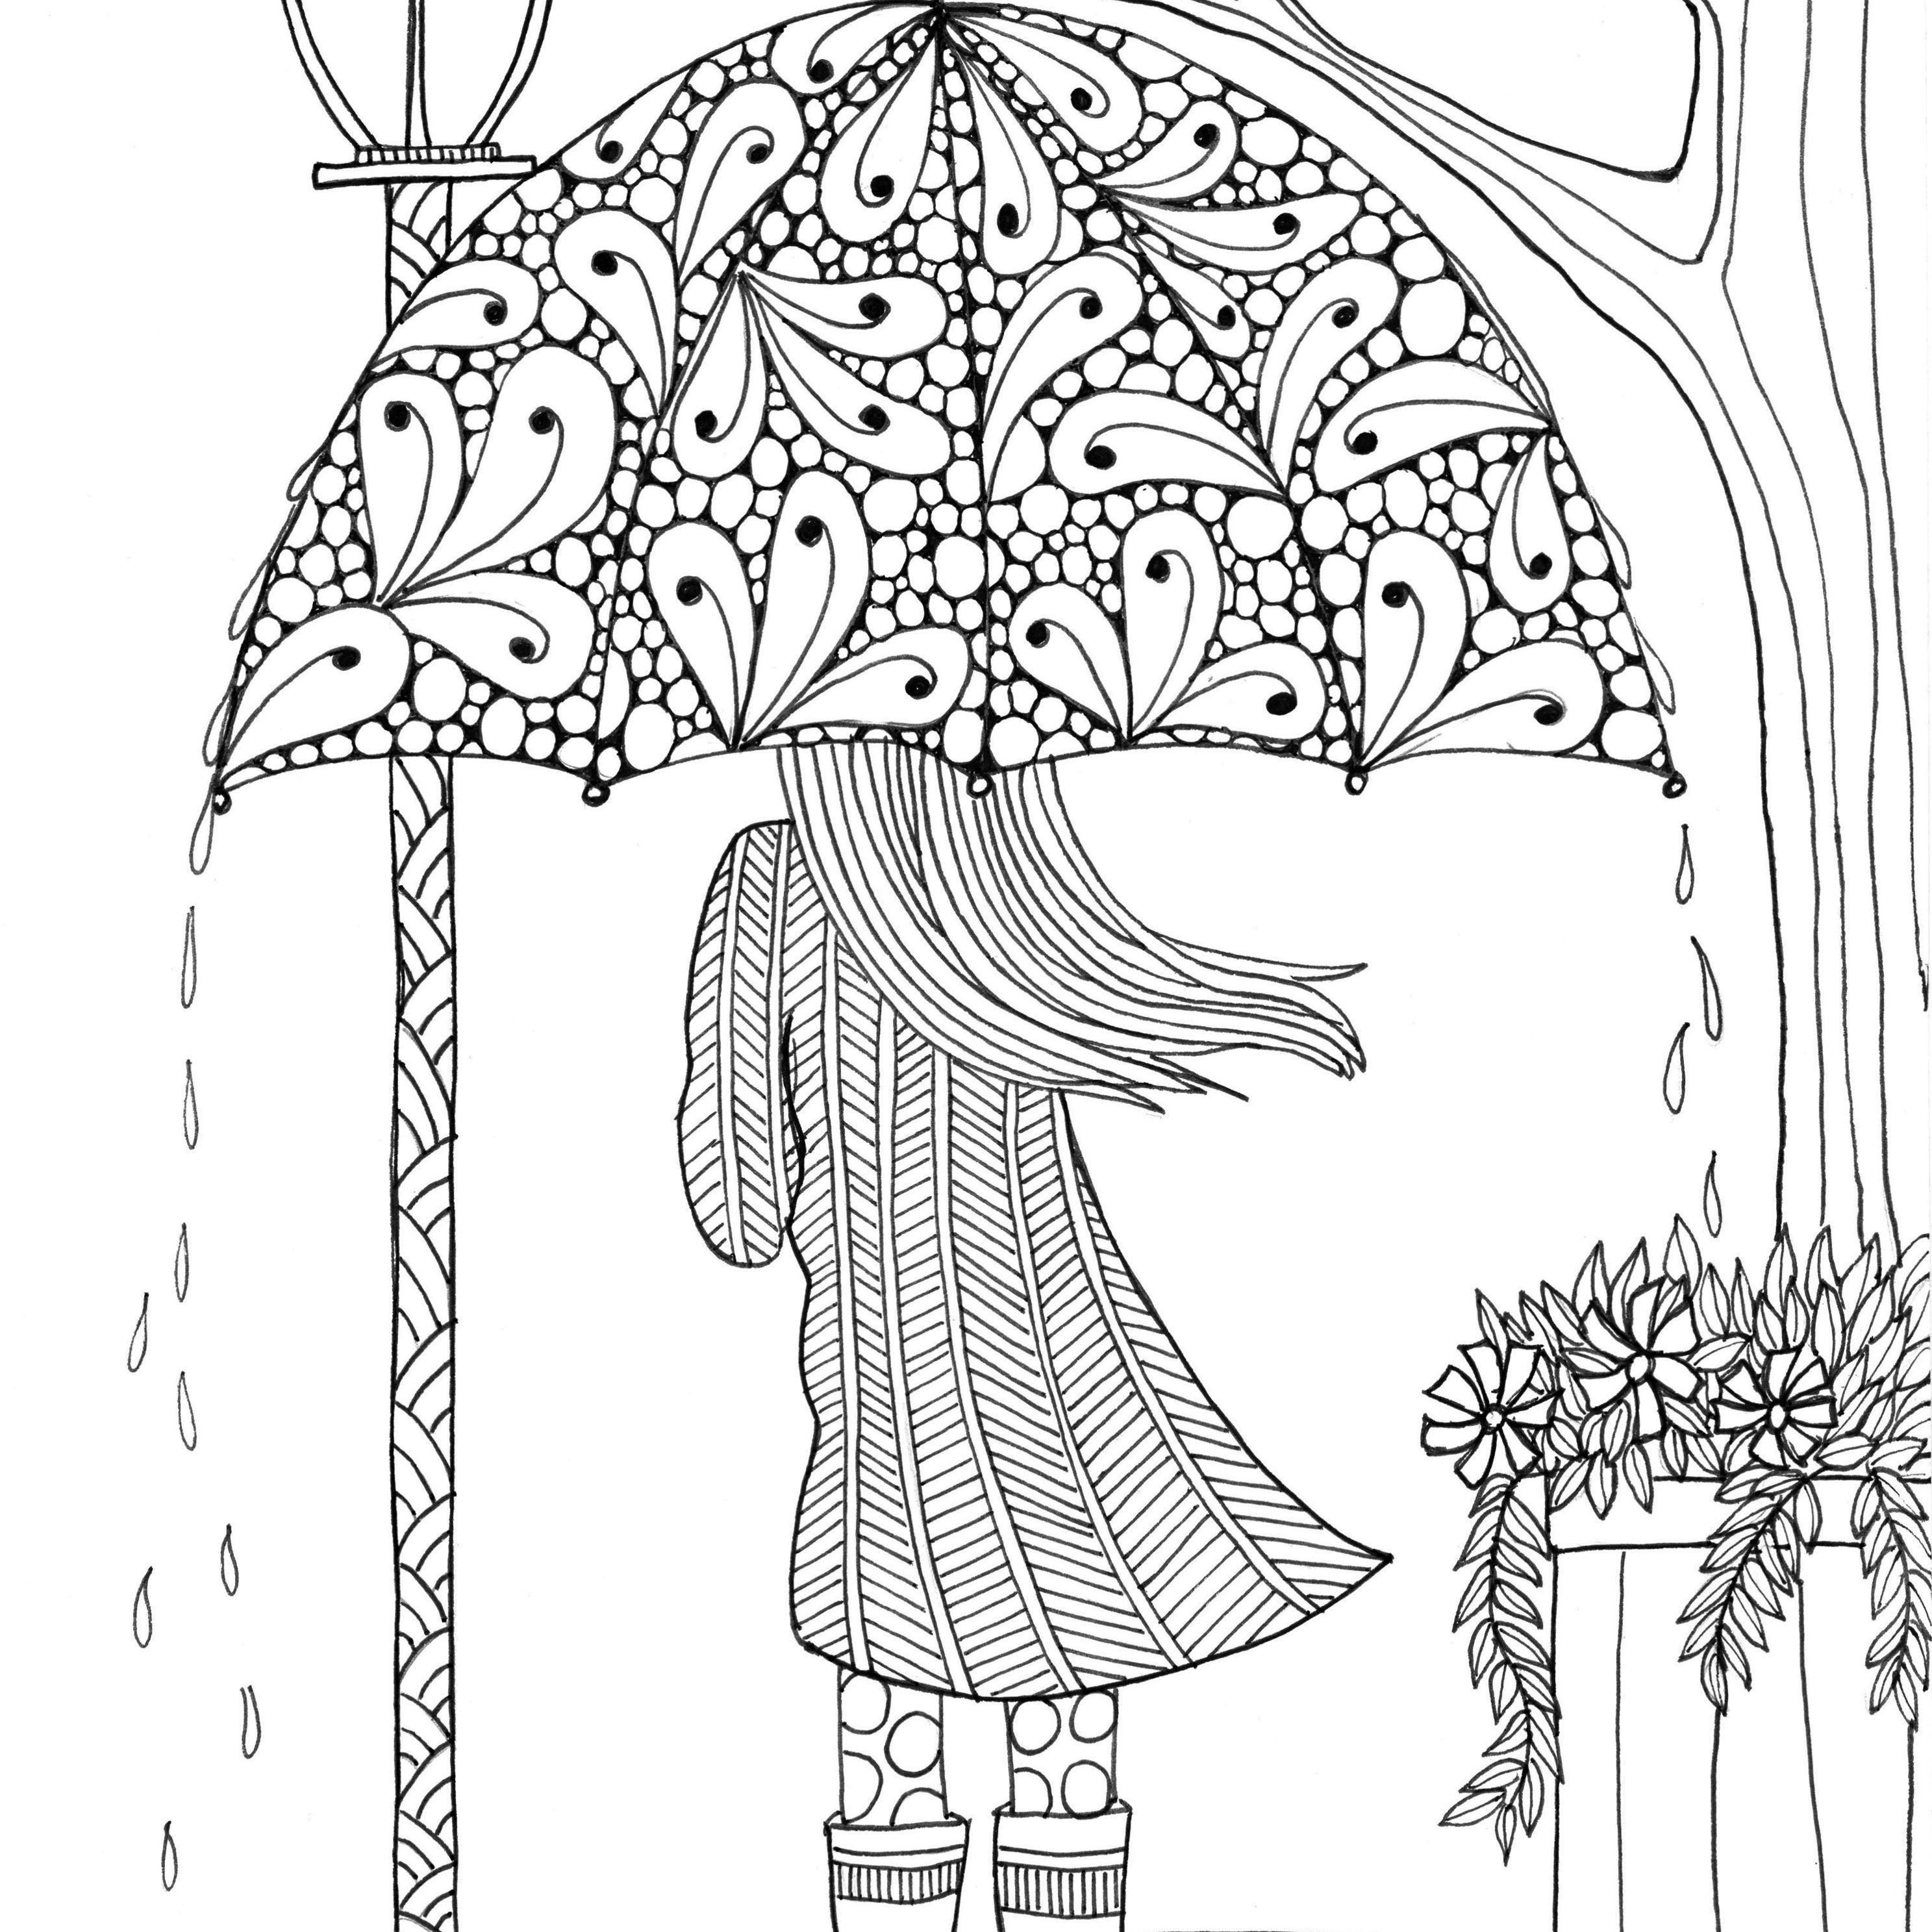 coloring templates for adults get the coloring page wolf free coloring pages for adults for templates coloring